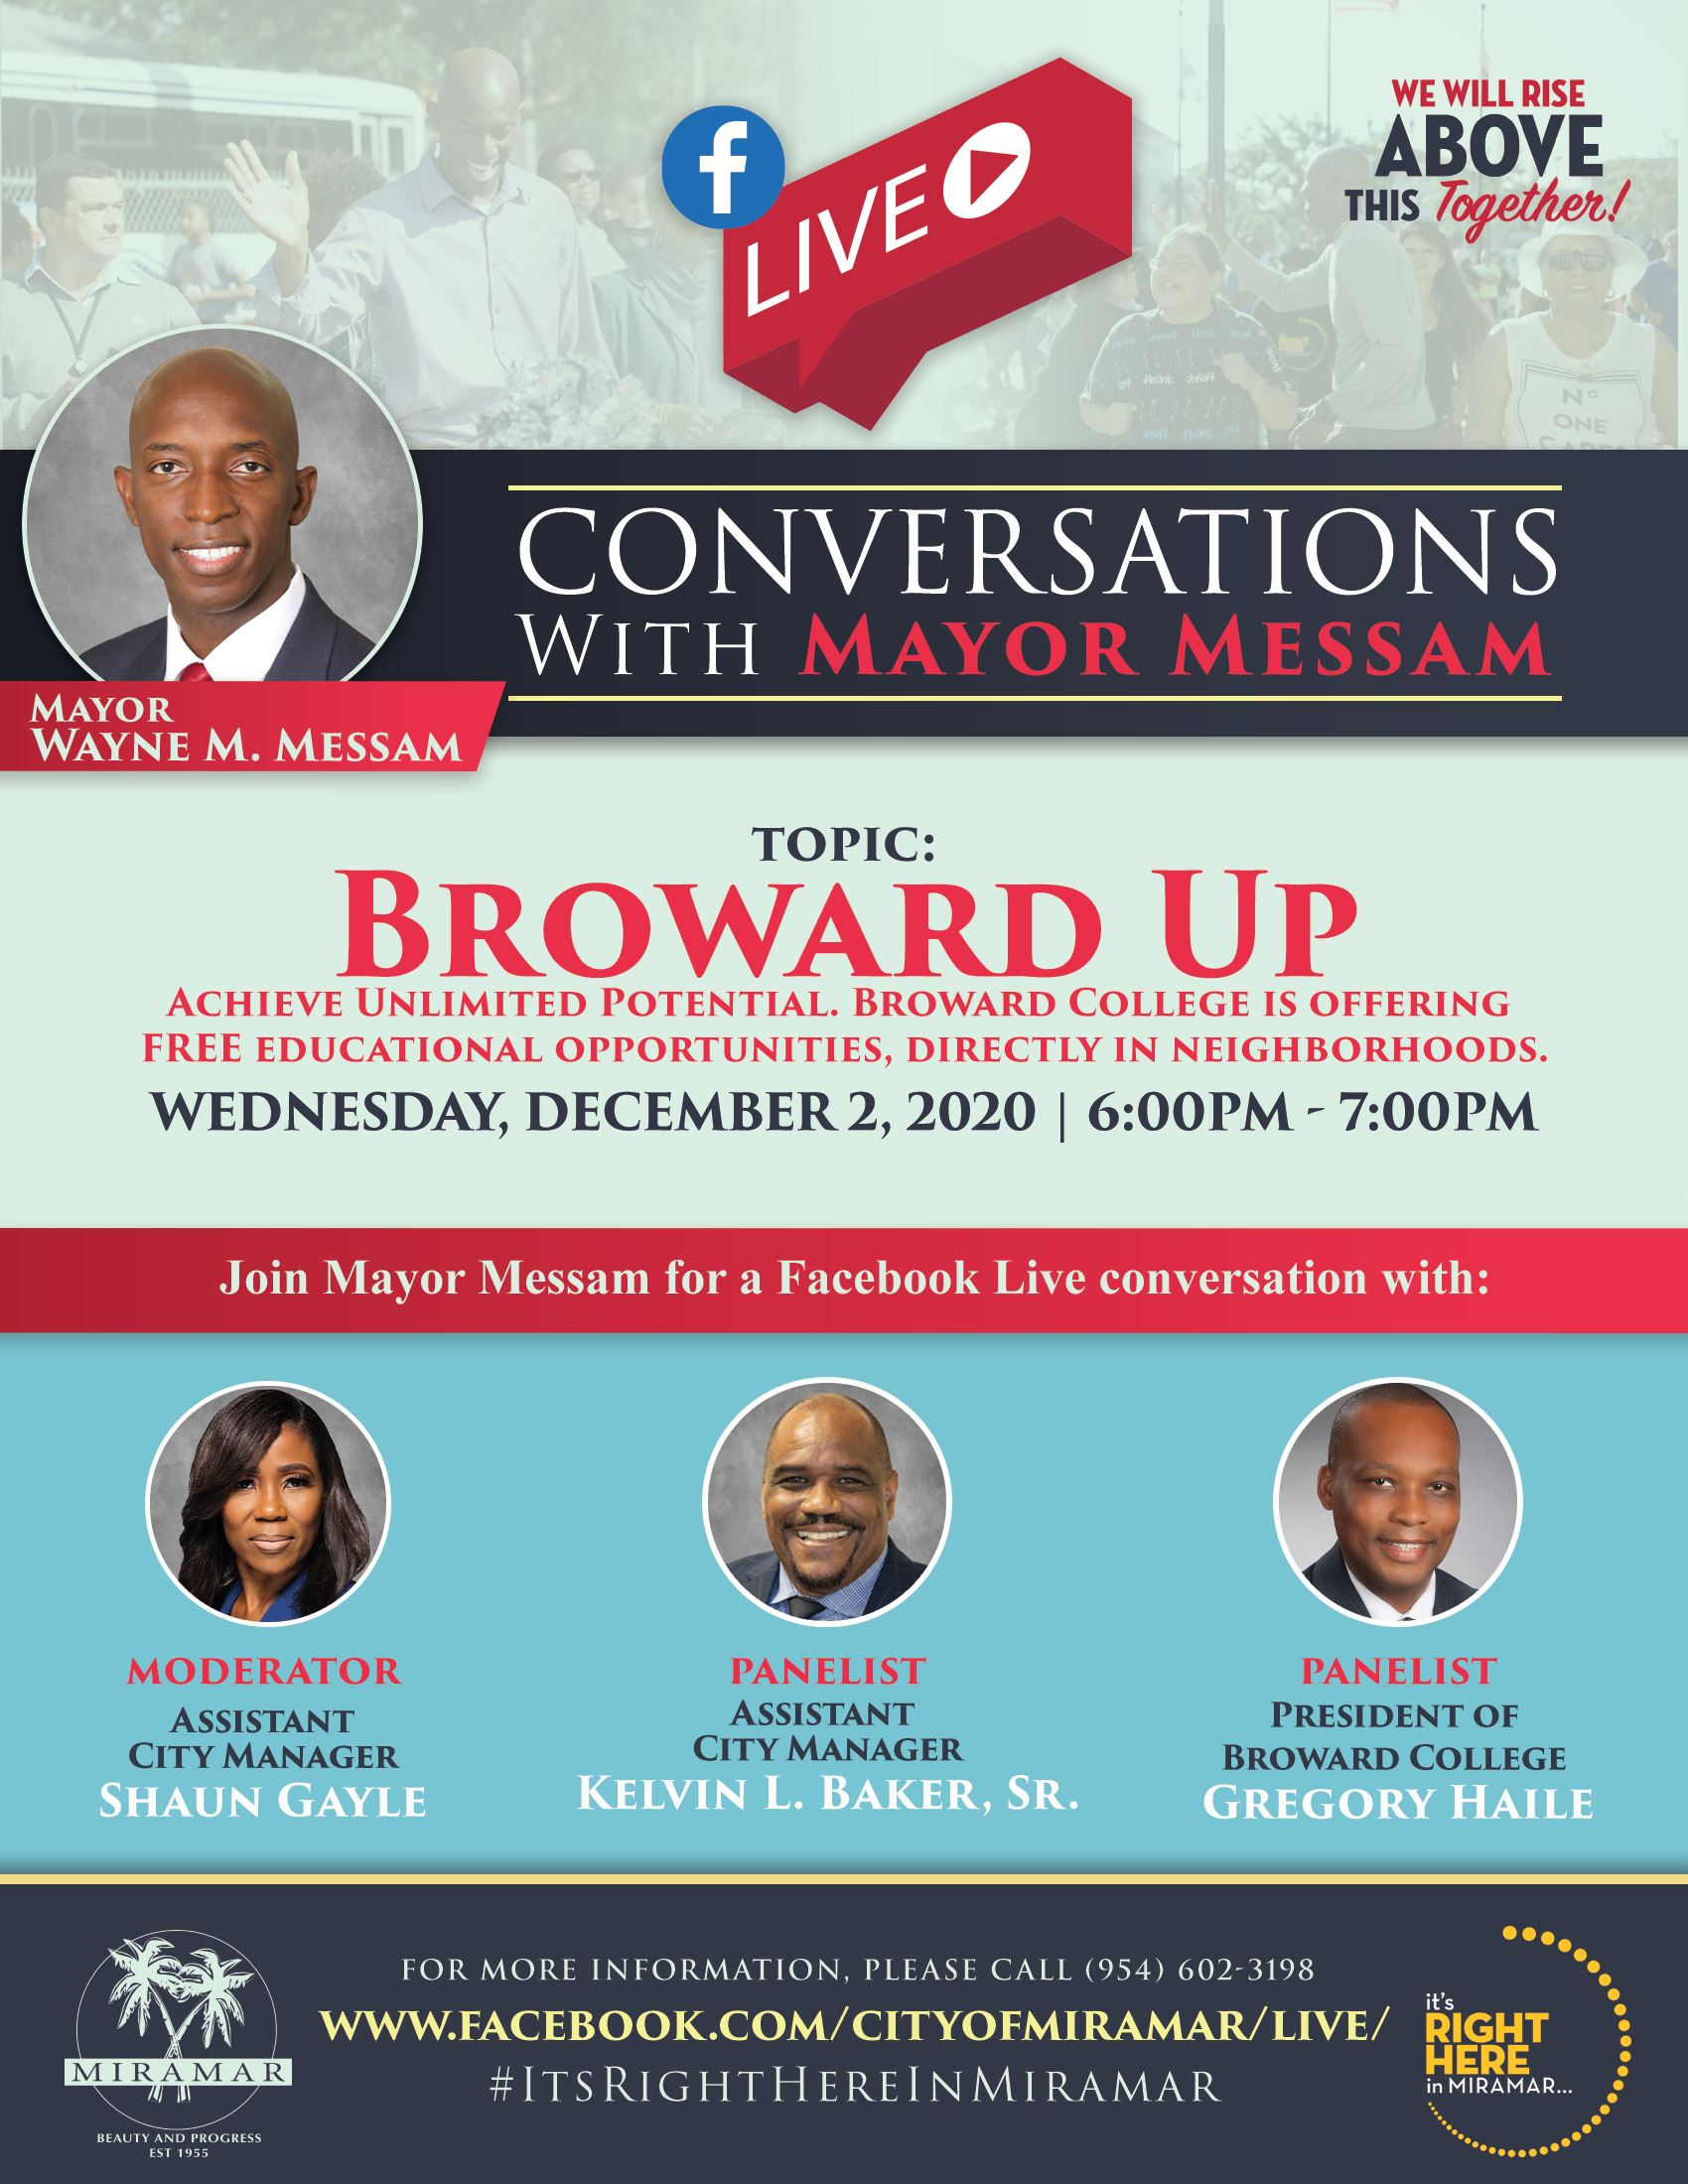 Conversations with Mayor - December 2